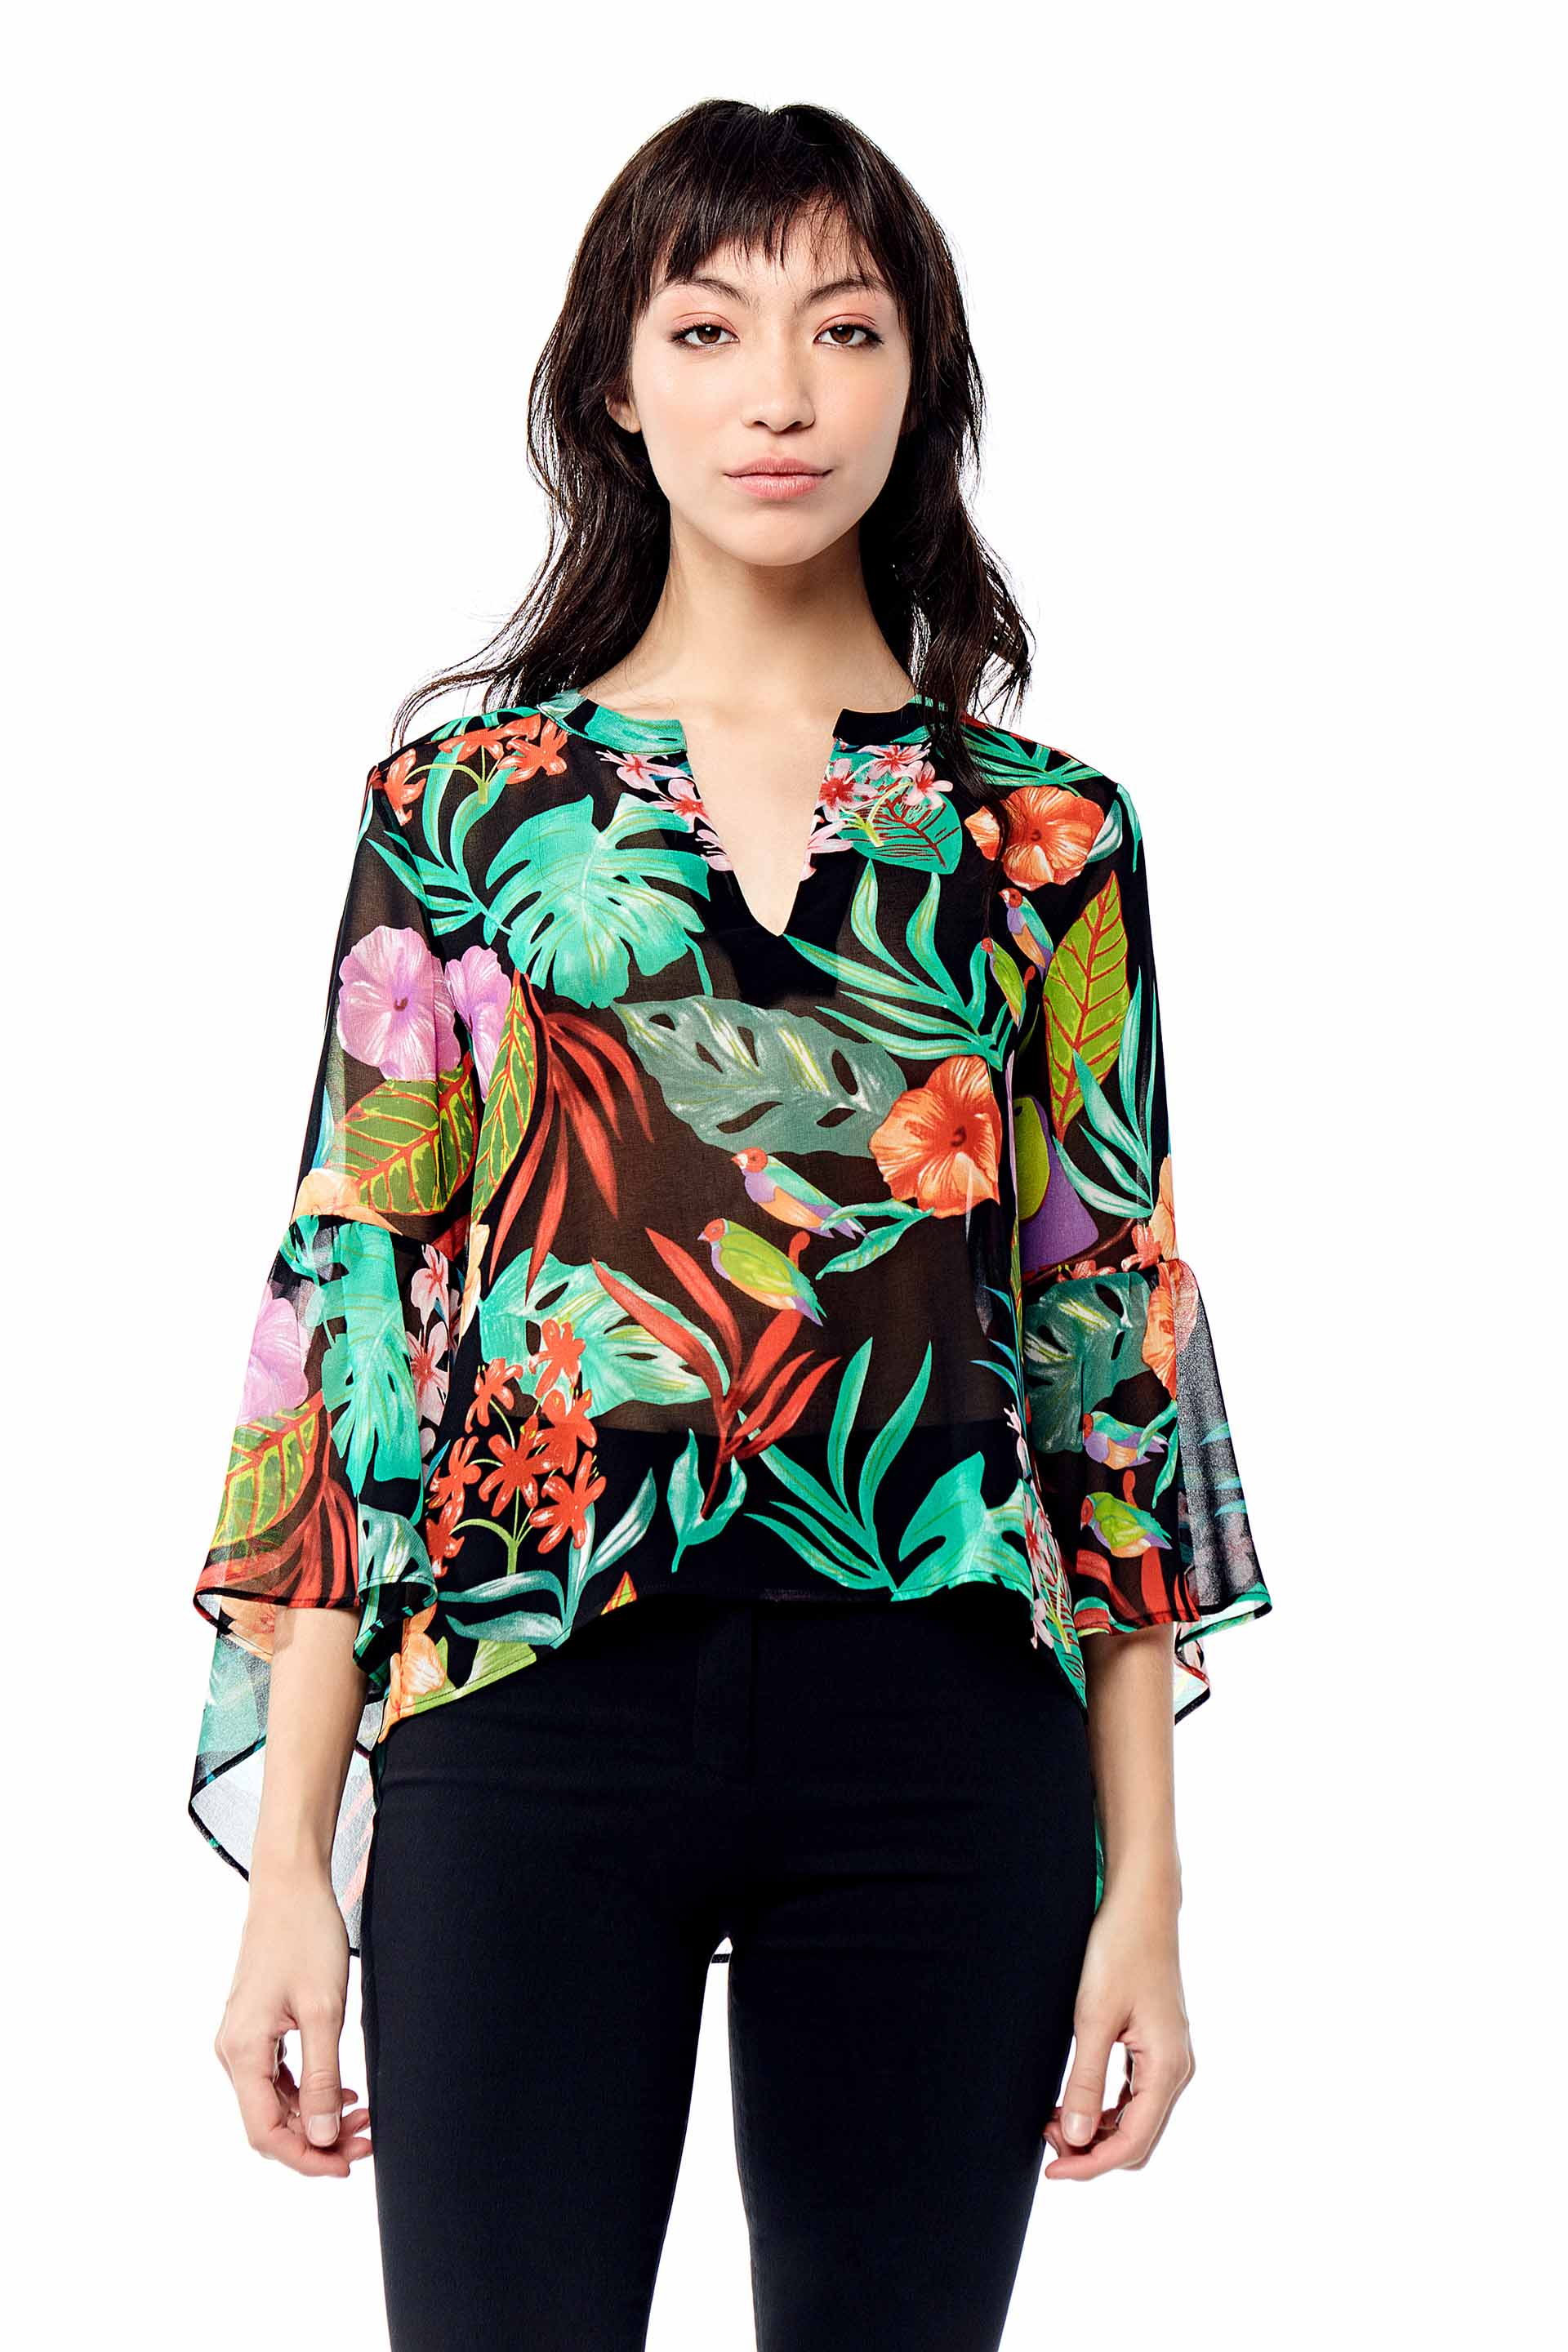 markova_blusa-tropical-_56-27-2019__picture-25847